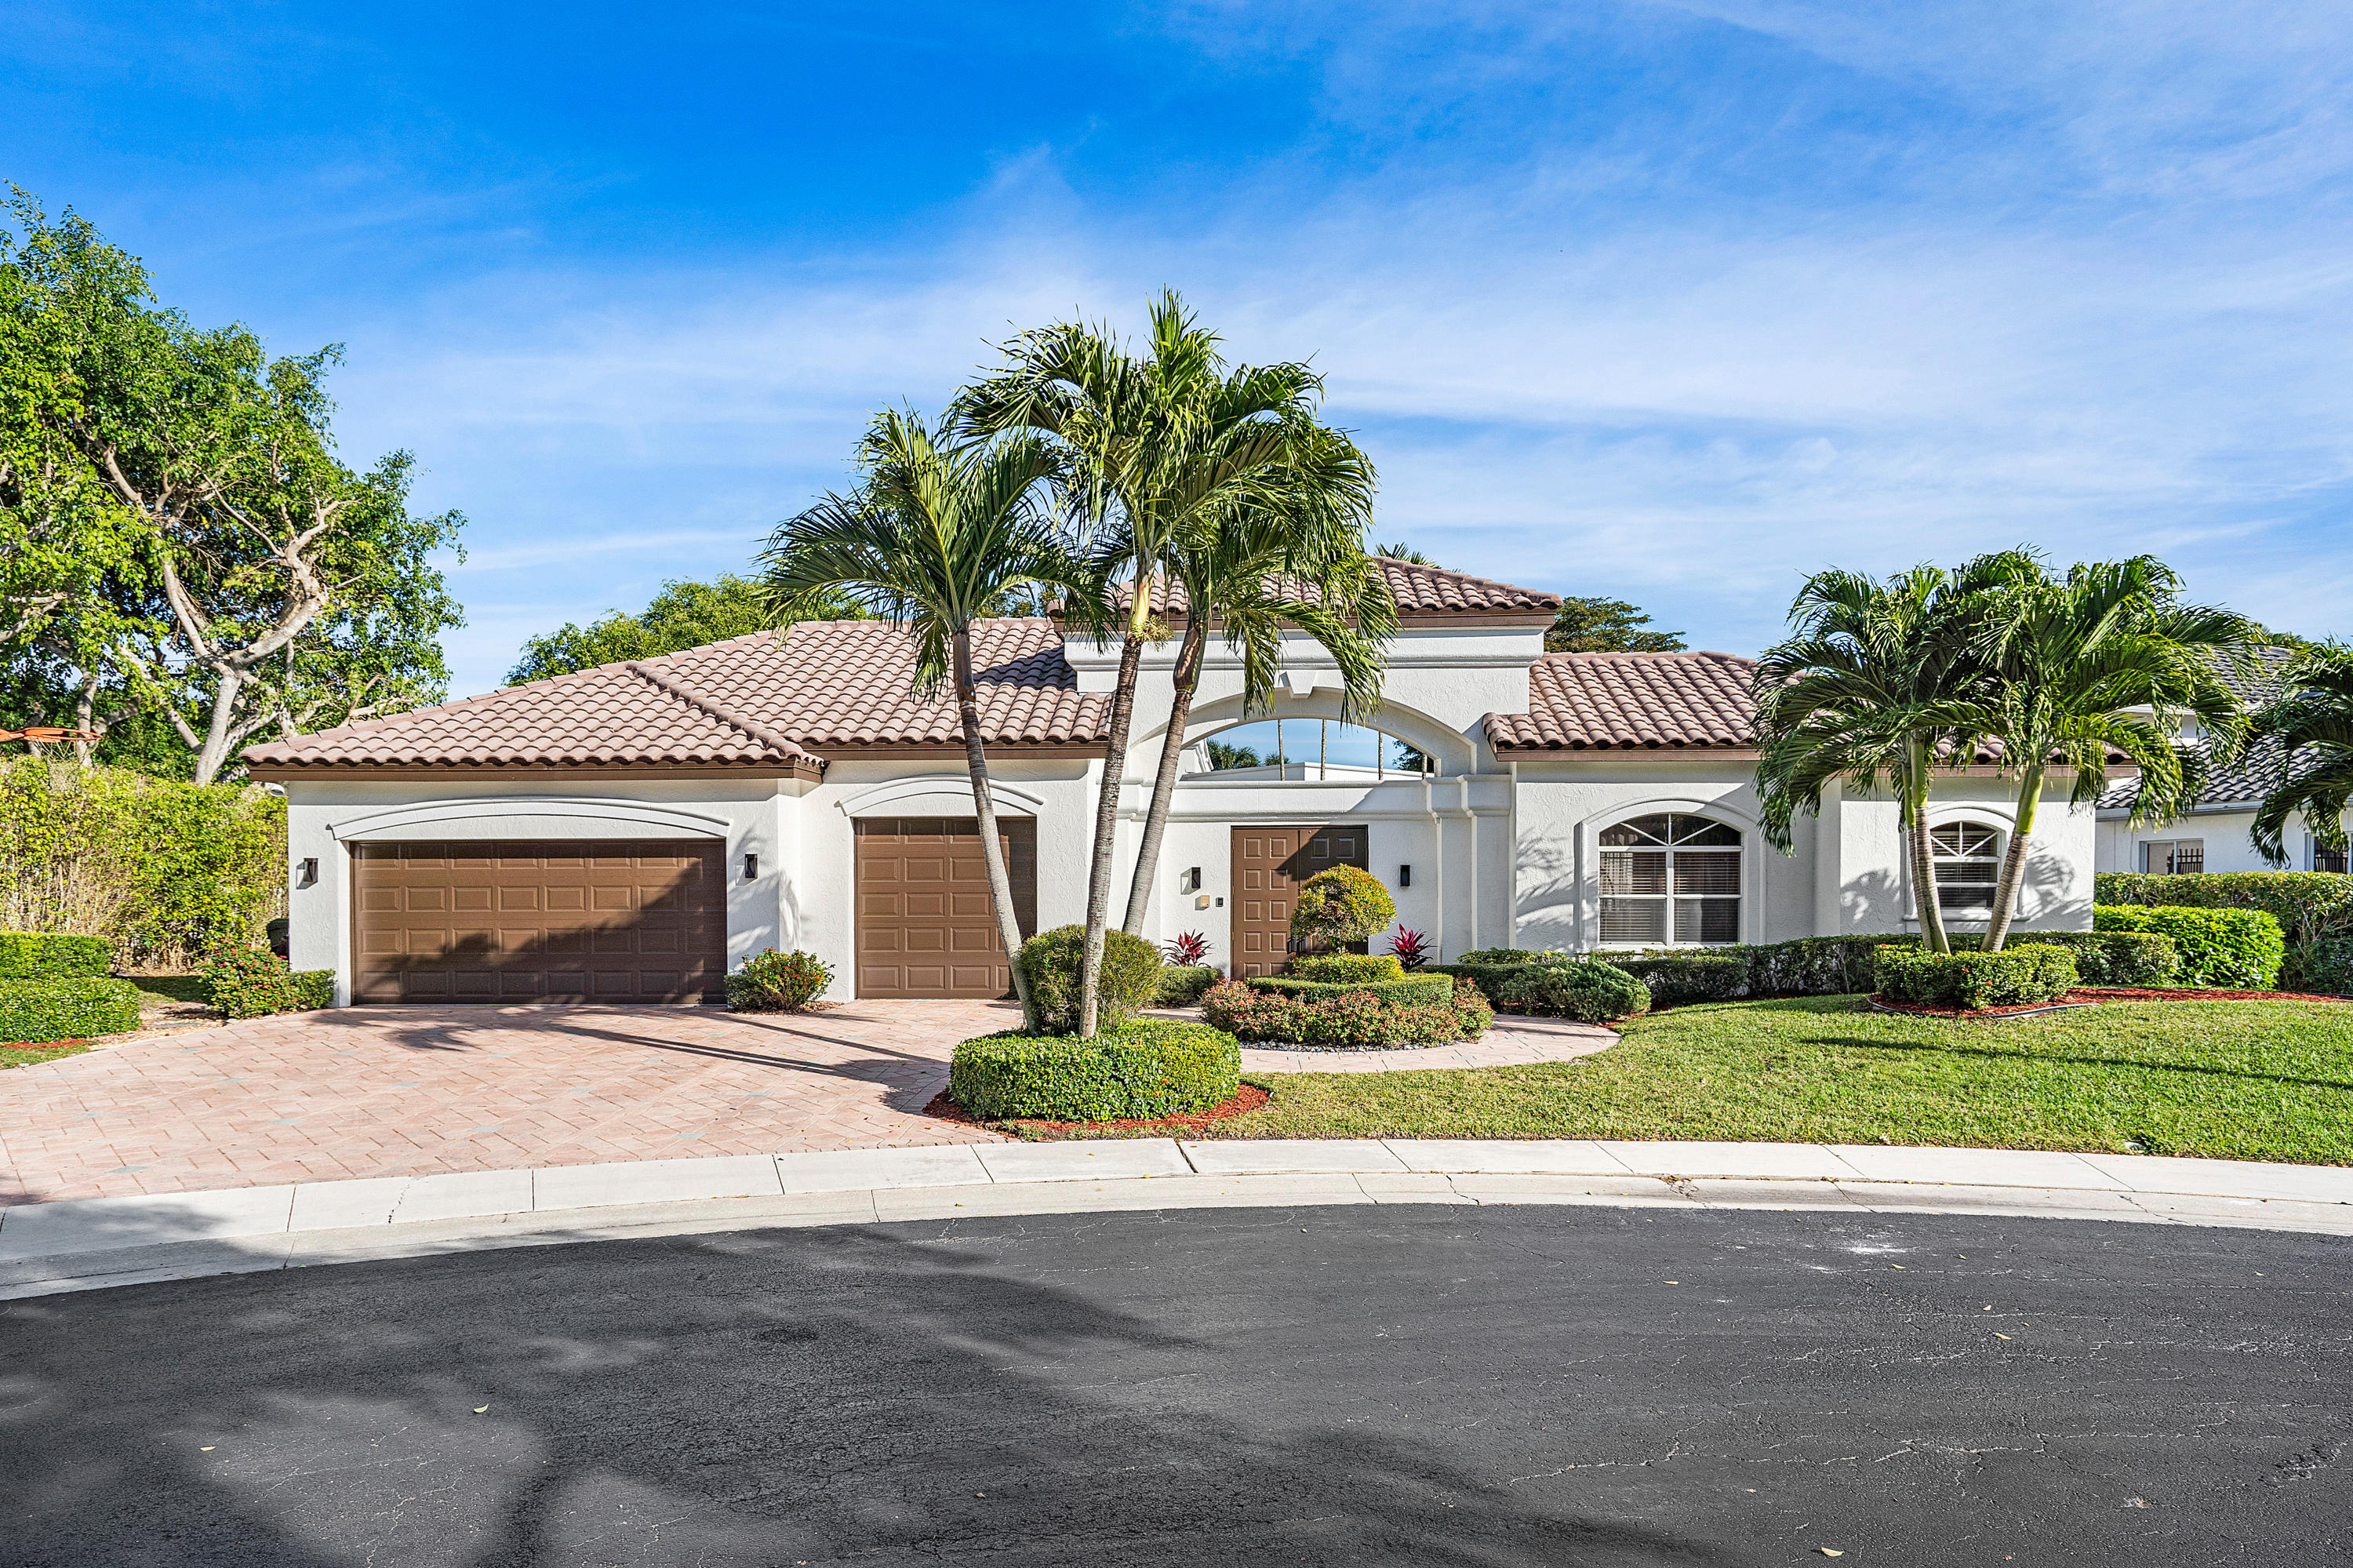 Photo of 6582 NW 33rd Avenue, Boca Raton, FL 33496